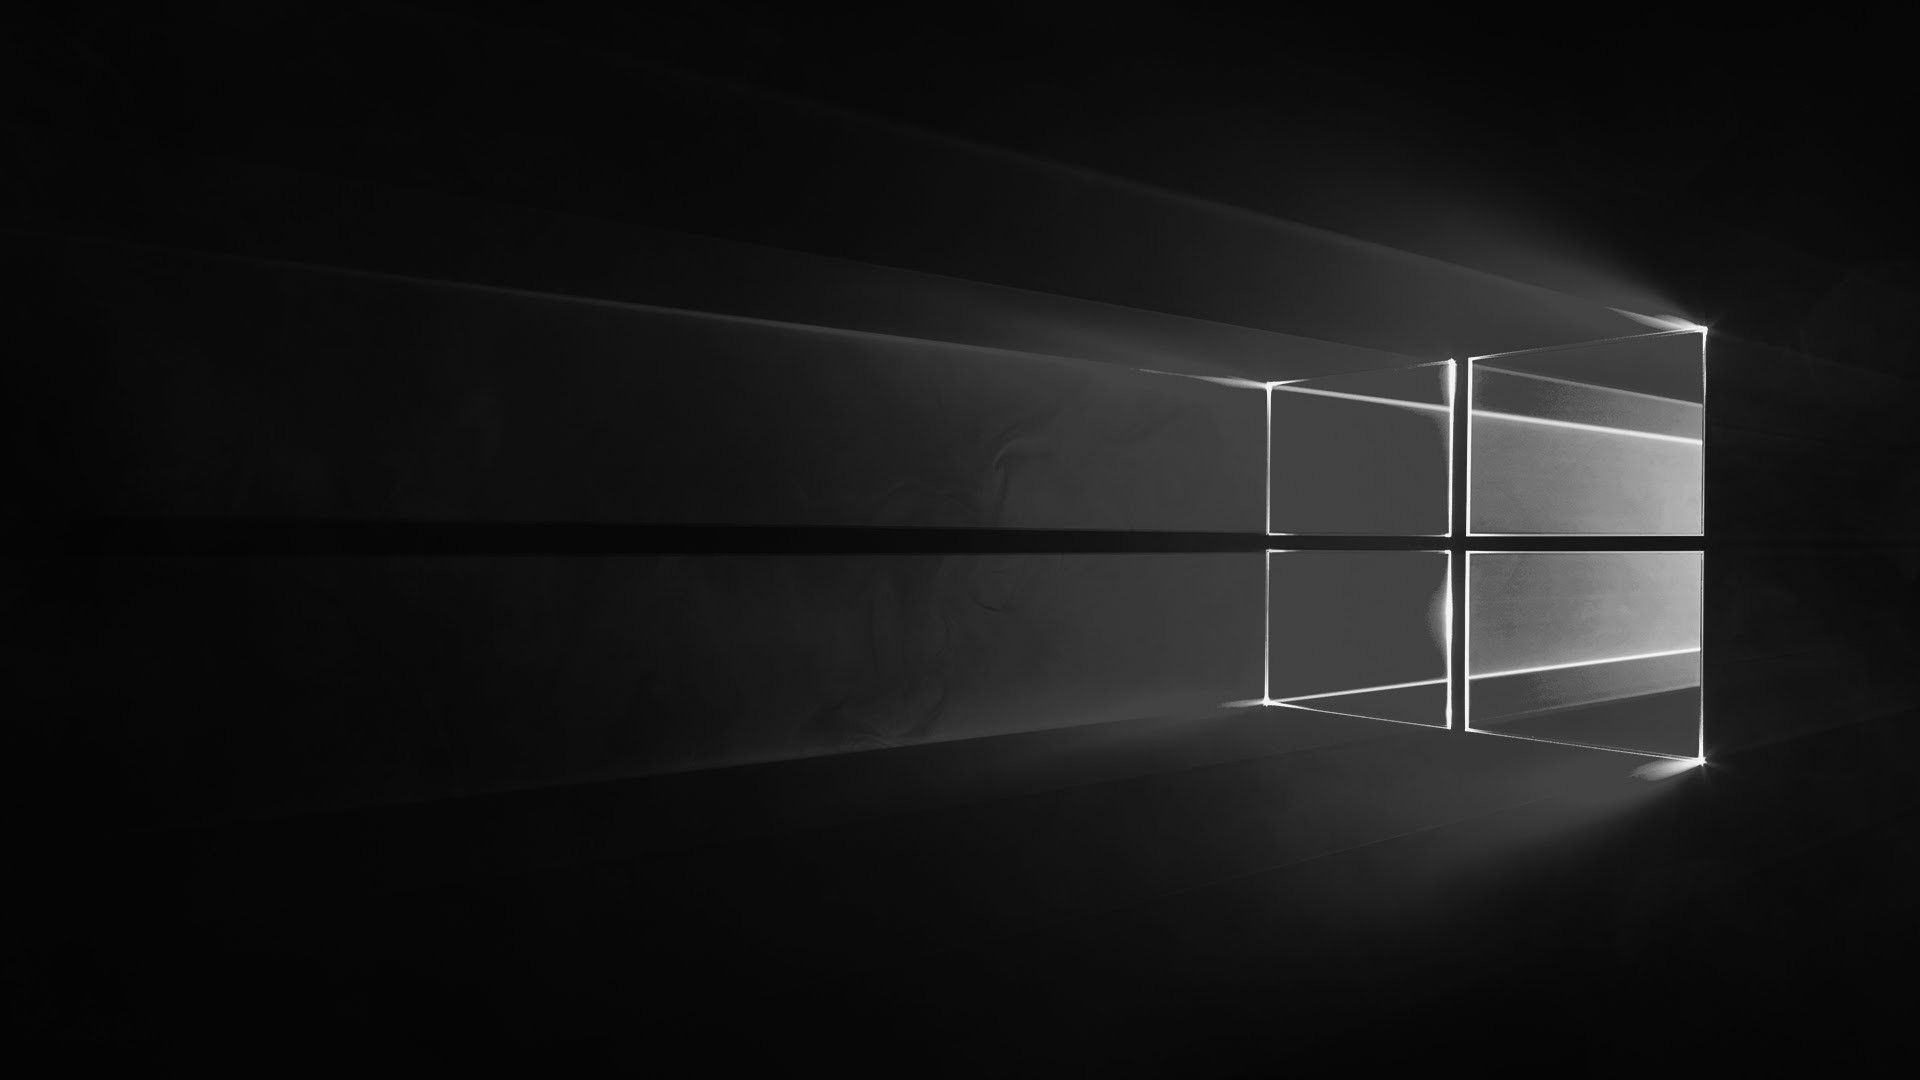 1920x1080 windows 10 black hd wallpaper Windows 10